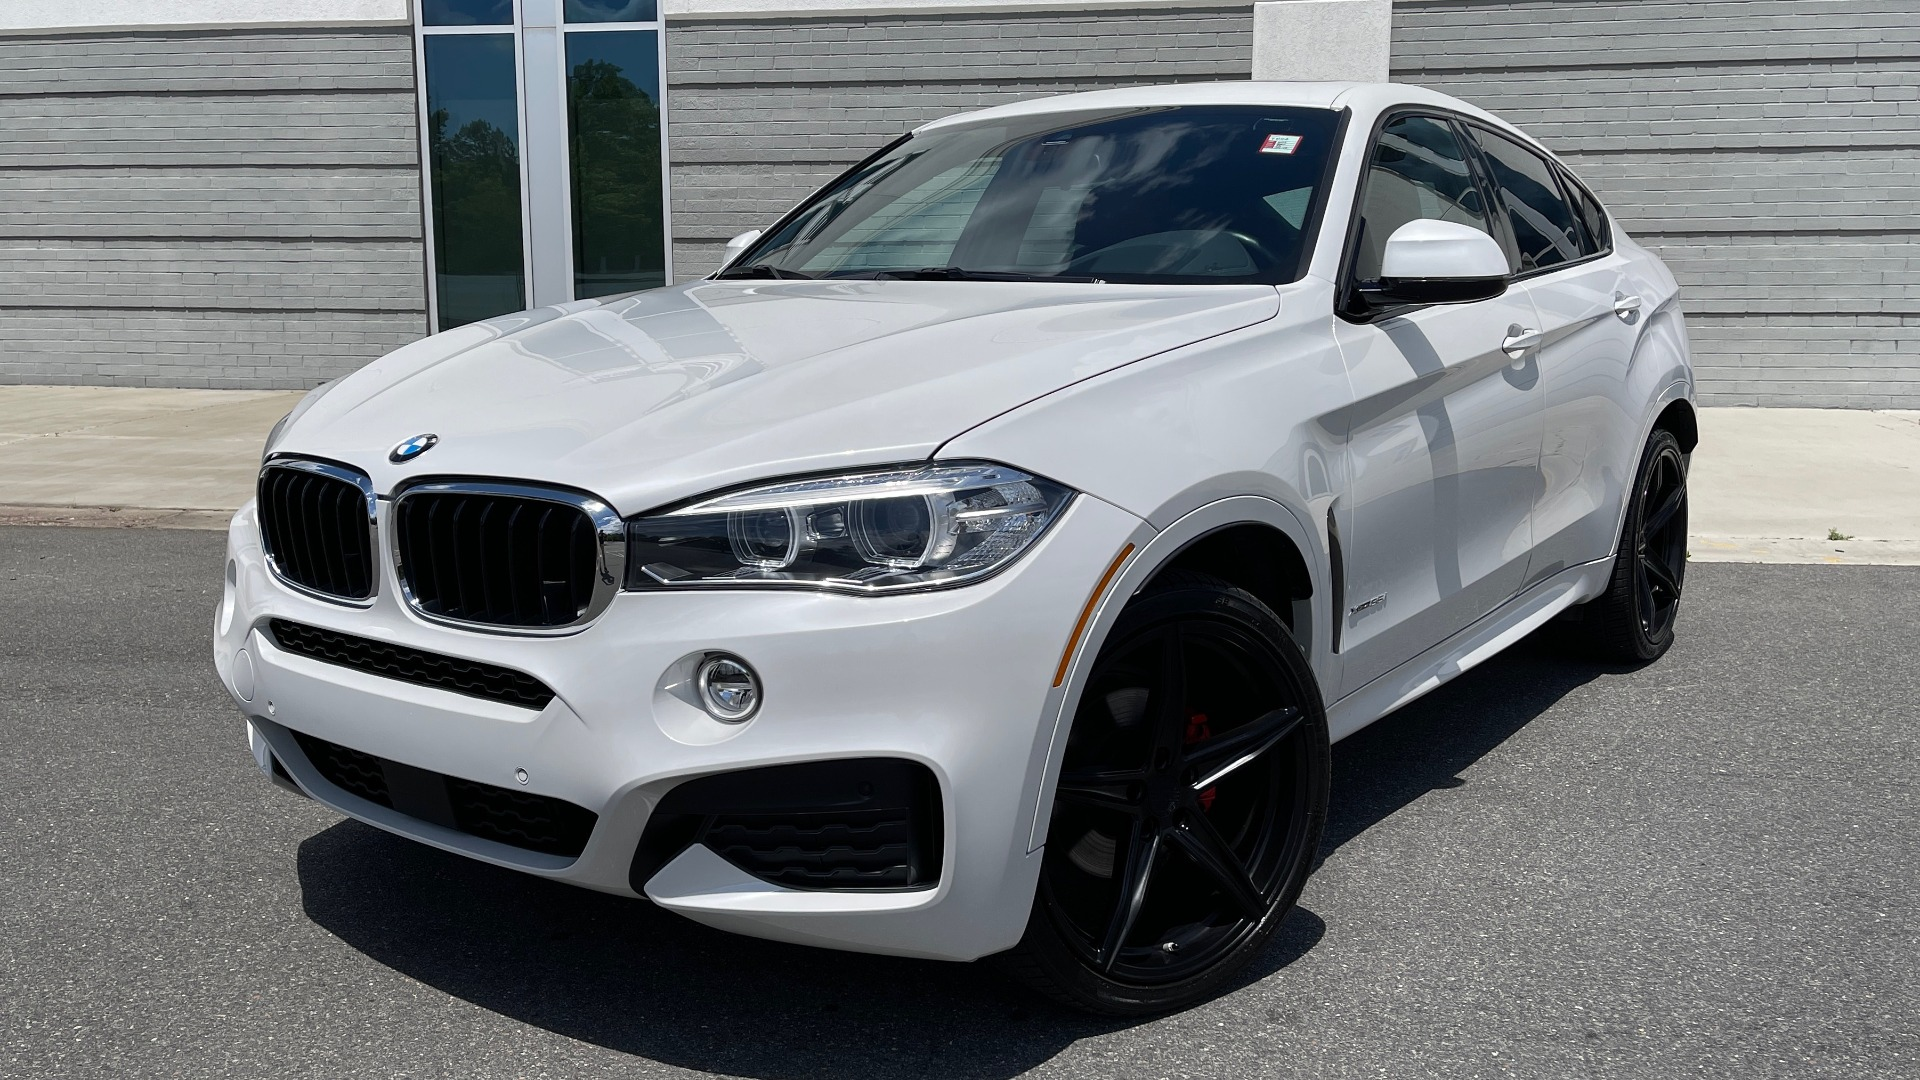 Used 2018 BMW X6 XDRIVE35I M-SPORT / NAV / DRVR ASST PLUS / ADAPT M-SUSP / REARVIEW for sale Sold at Formula Imports in Charlotte NC 28227 1